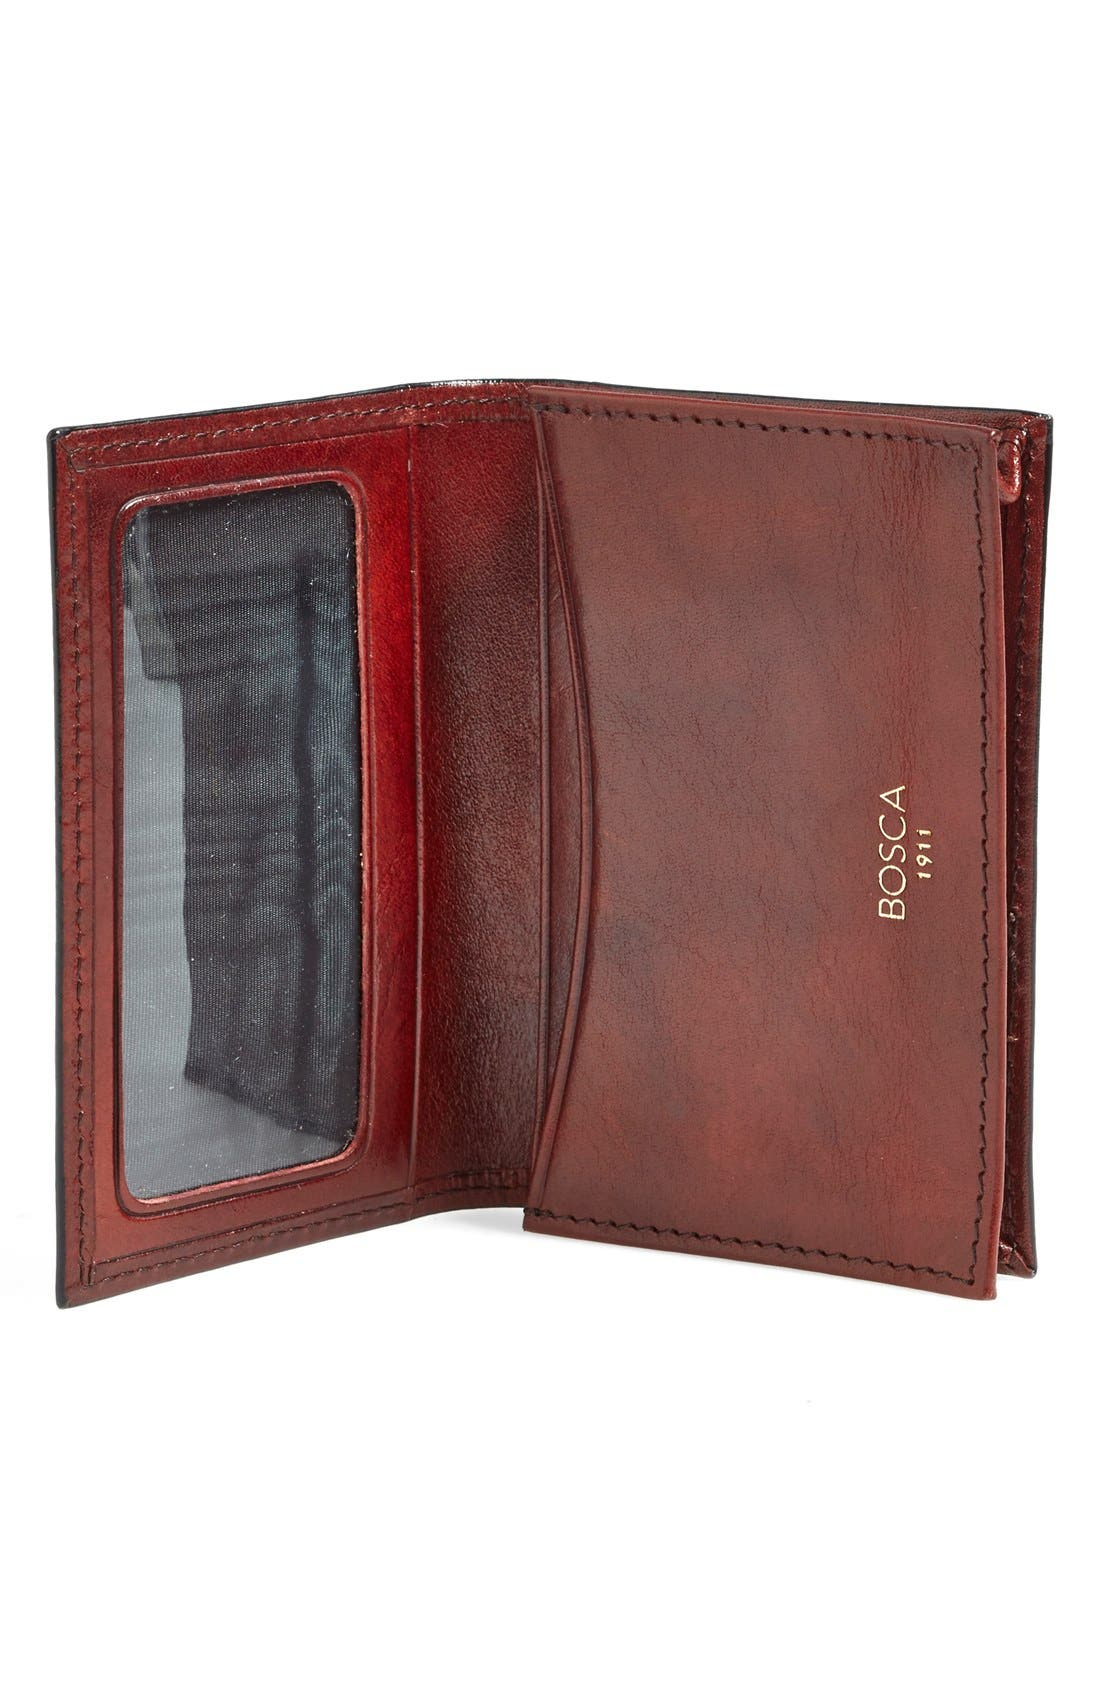 'Old Leather' Gusset Wallet,                             Alternate thumbnail 6, color,